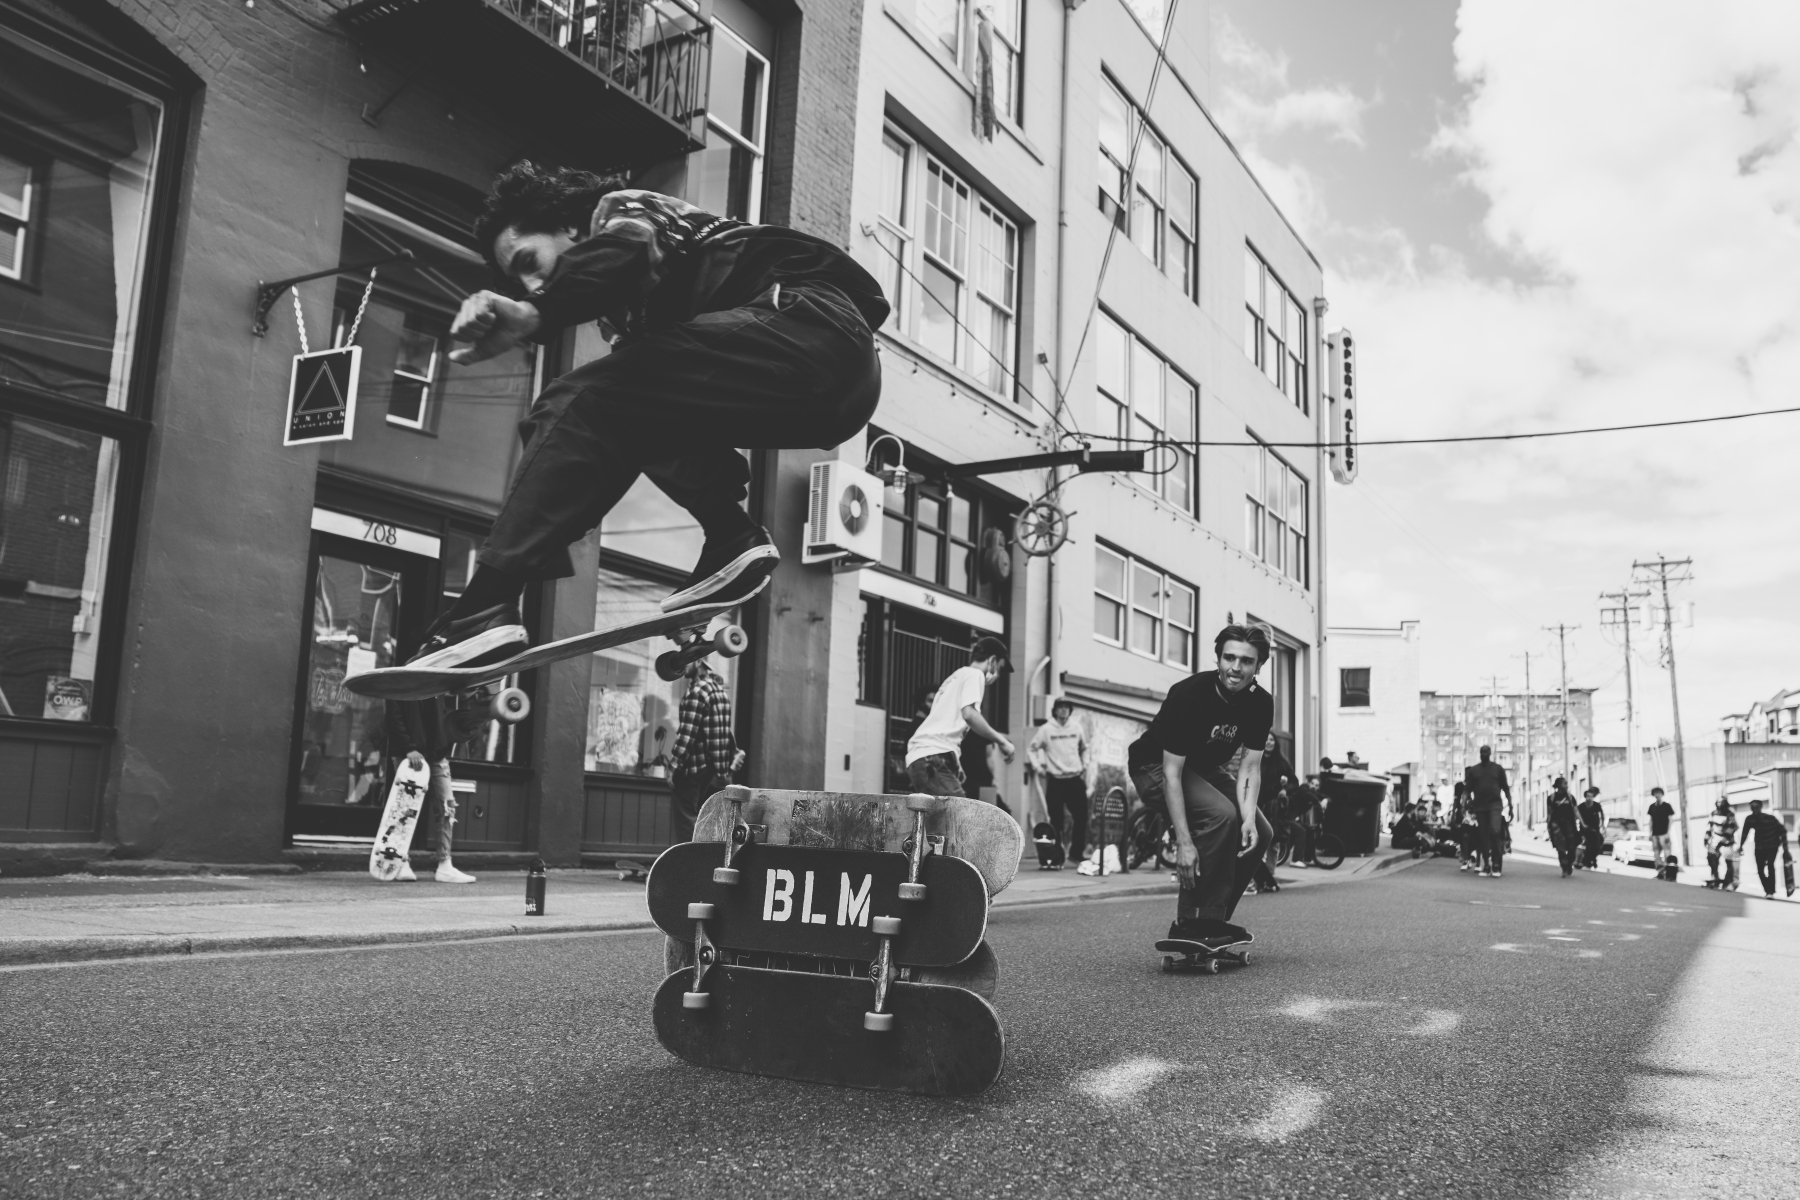 Grit City BLM SKATE